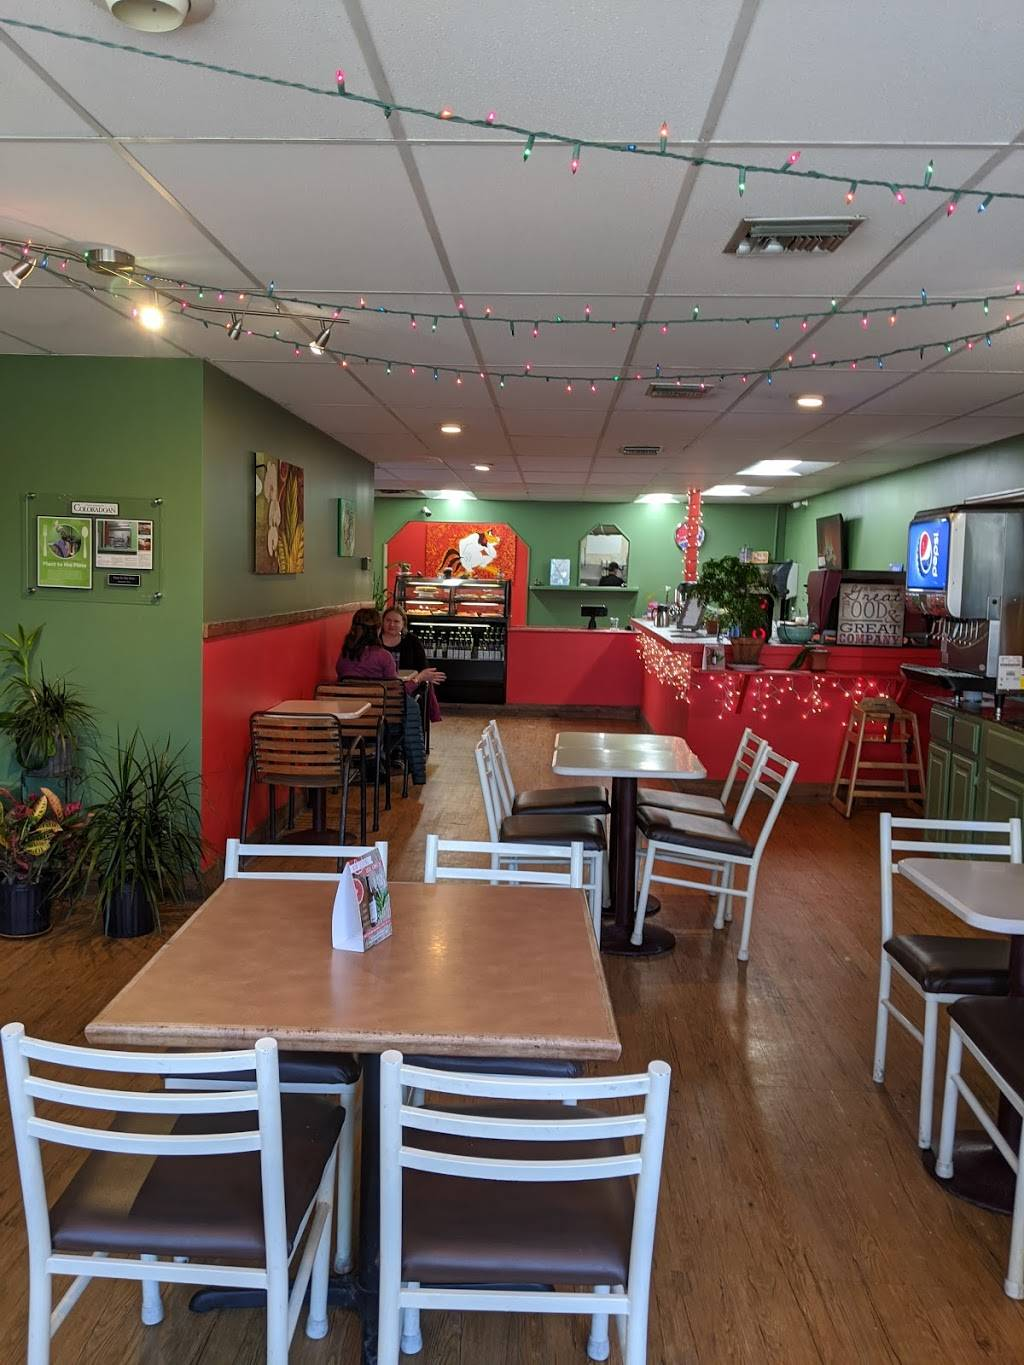 Plant To The Plate | restaurant | 822 S College Ave, Fort Collins, CO 80524, USA | 9704822109 OR +1 970-482-2109